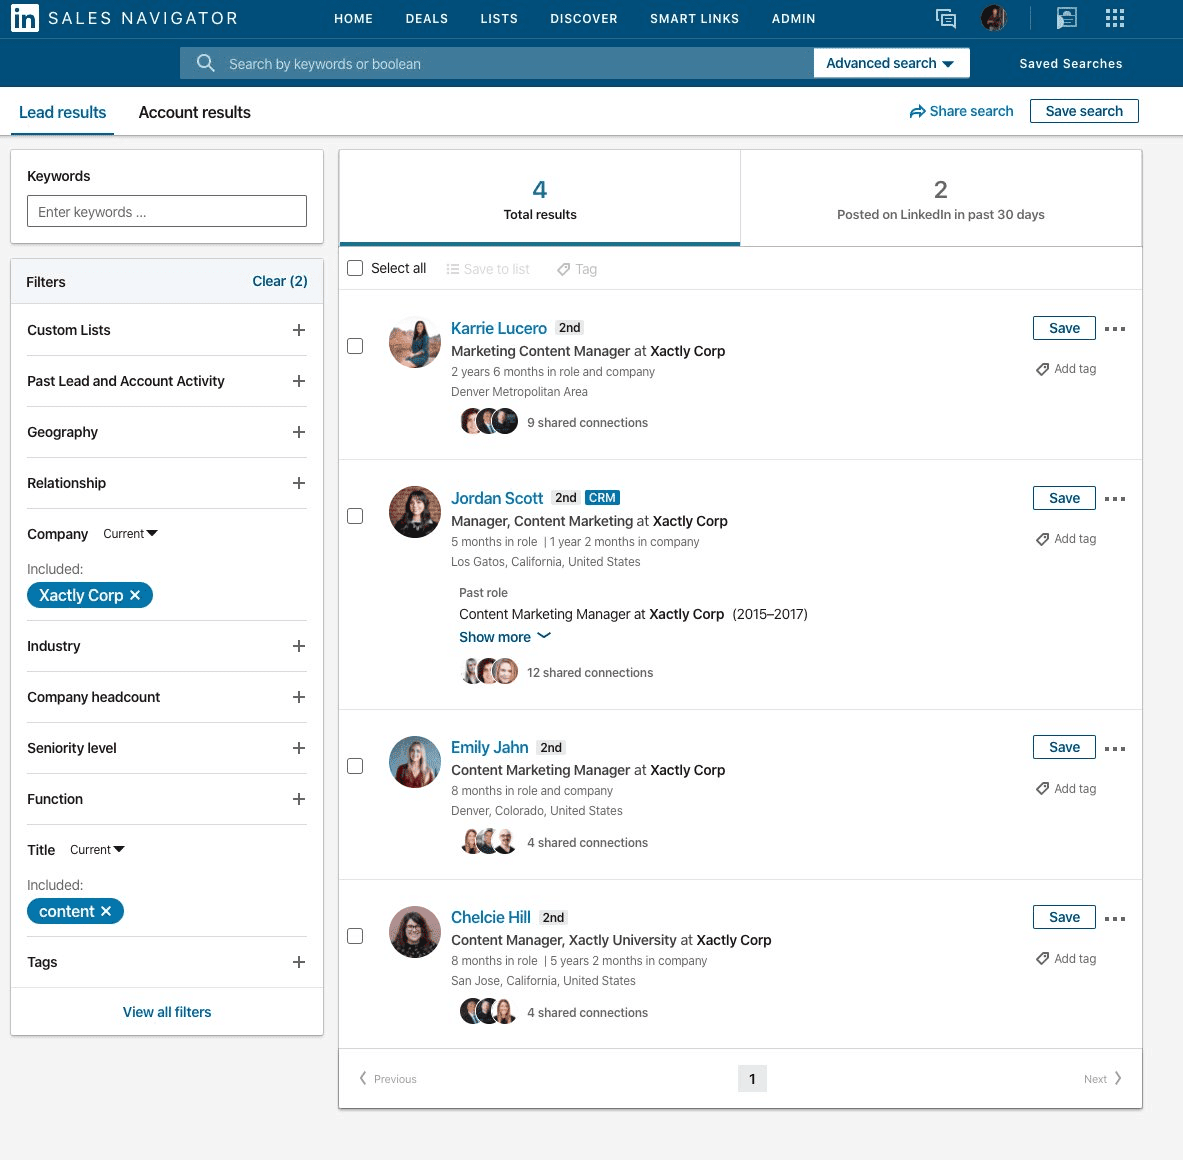 Sales Navigator helps you find the right people to contact for guest post opportunities.